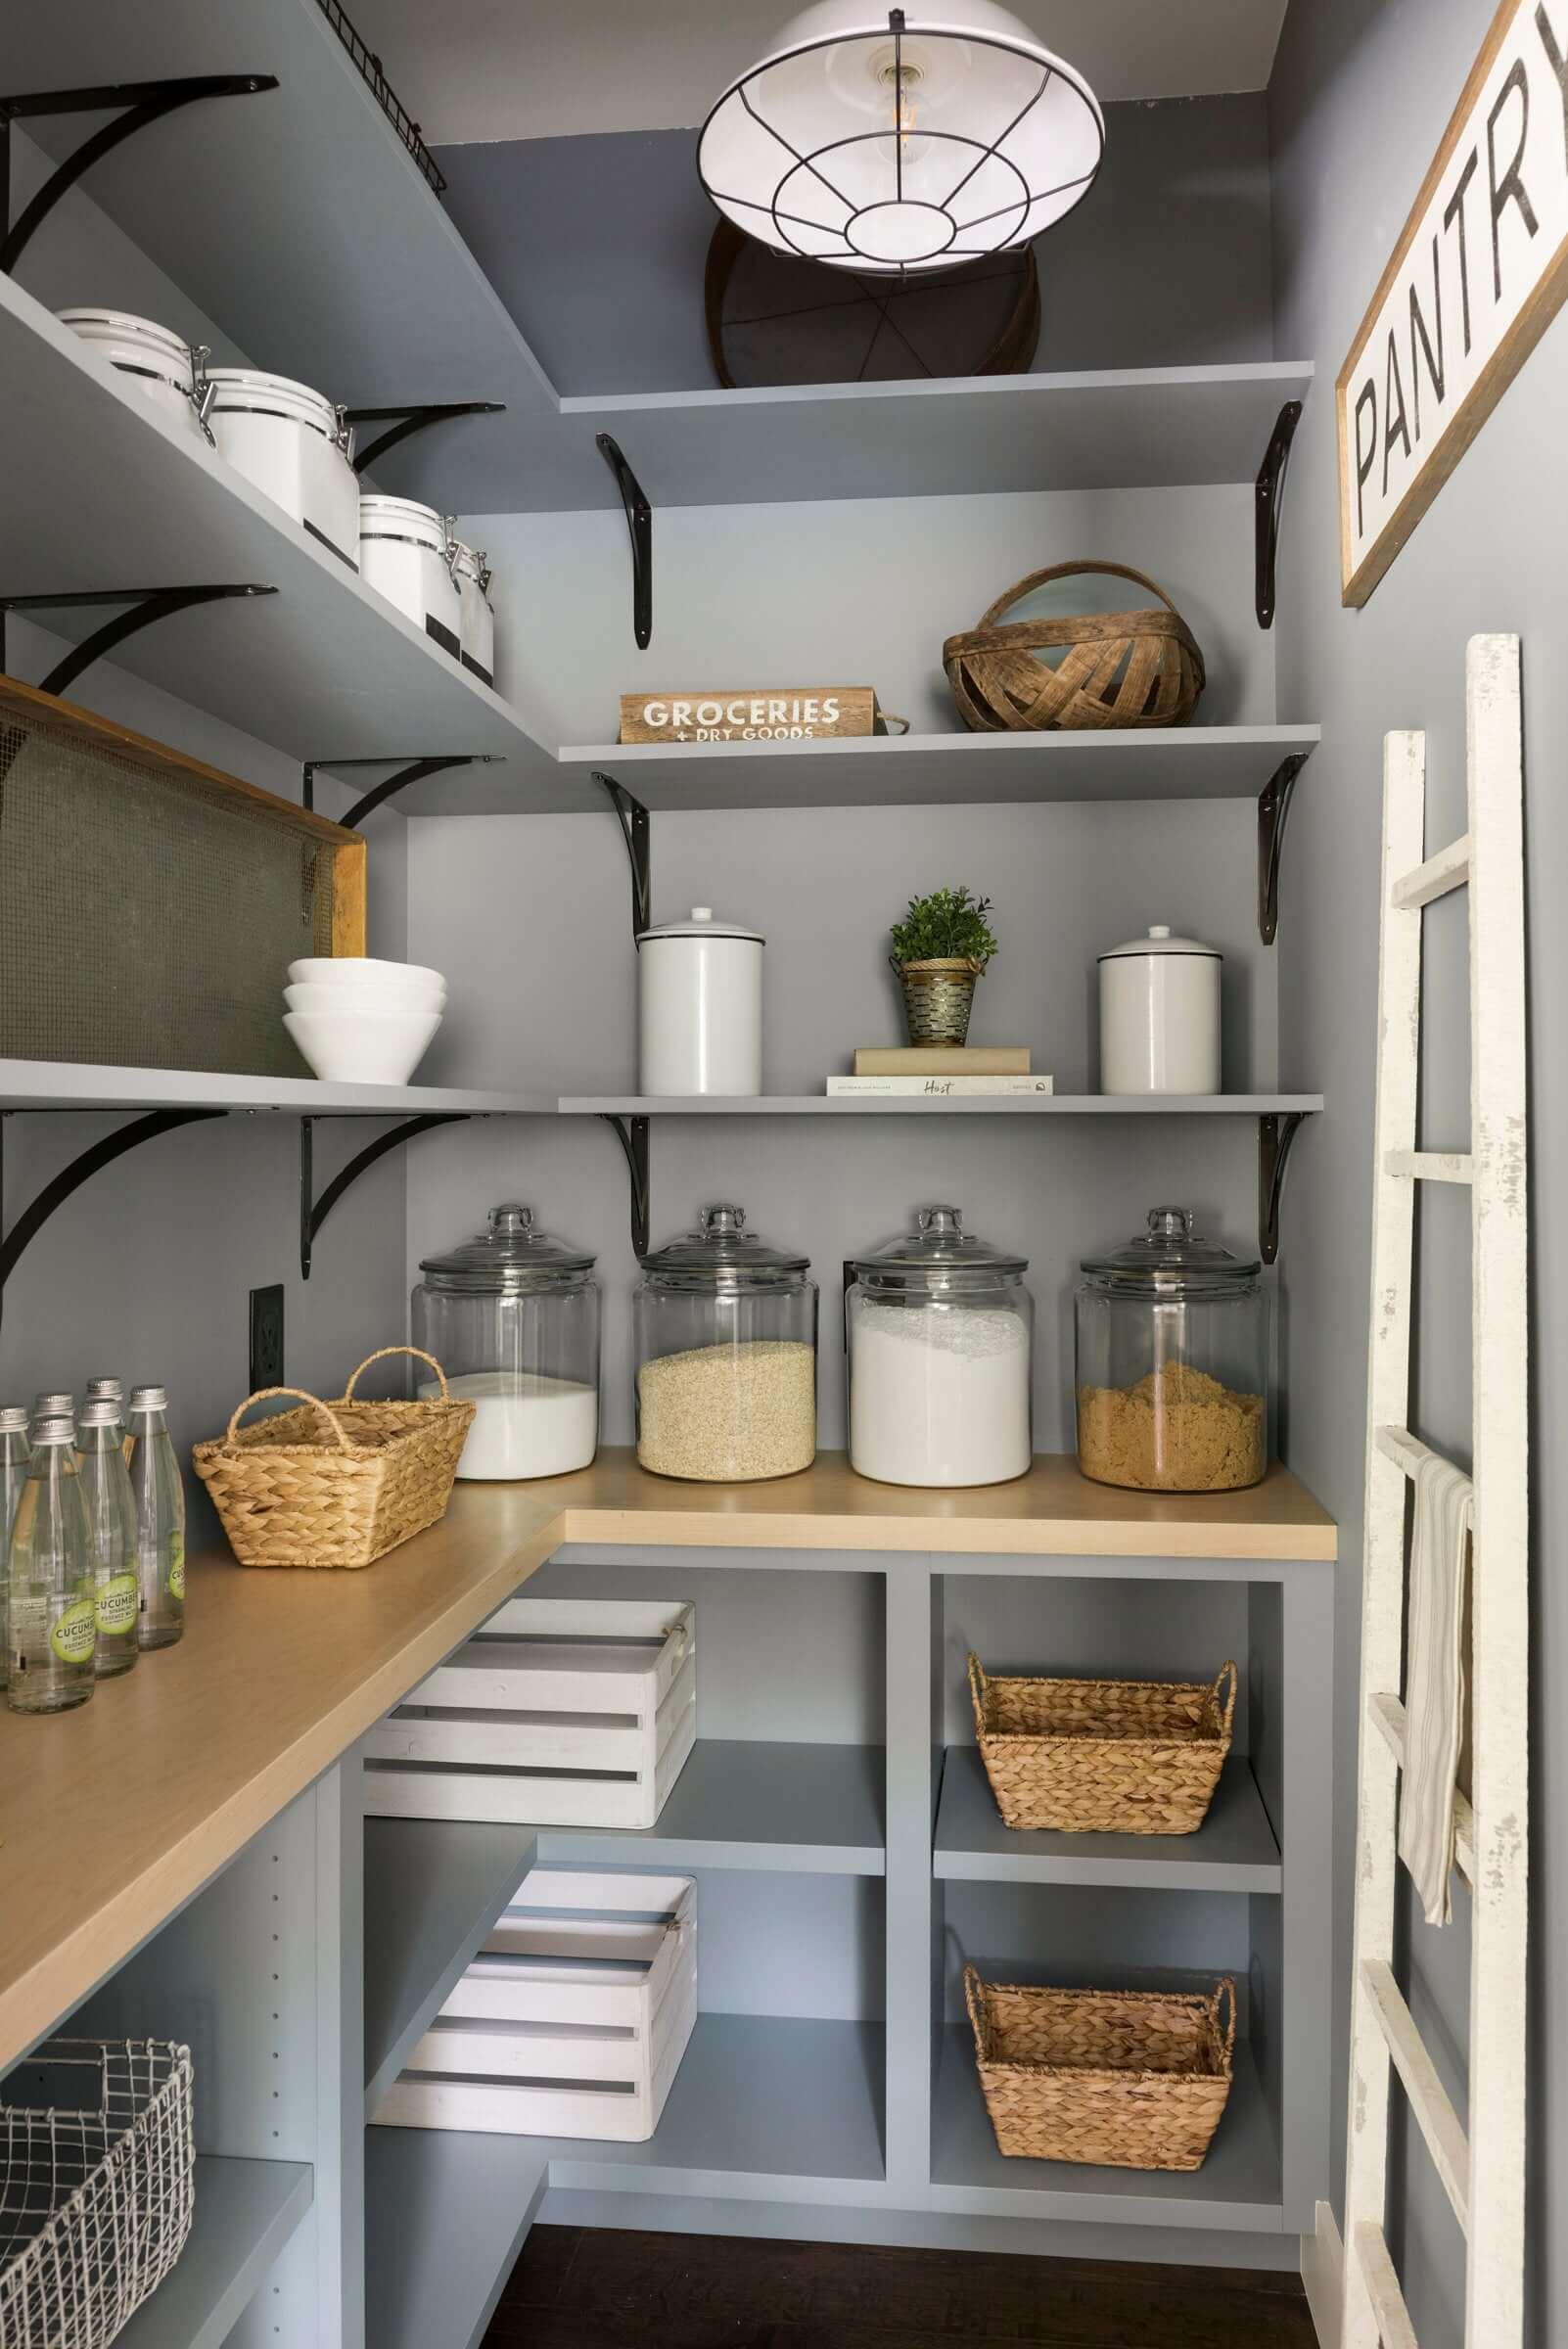 Large Modern French Pantry Shelving Ideas